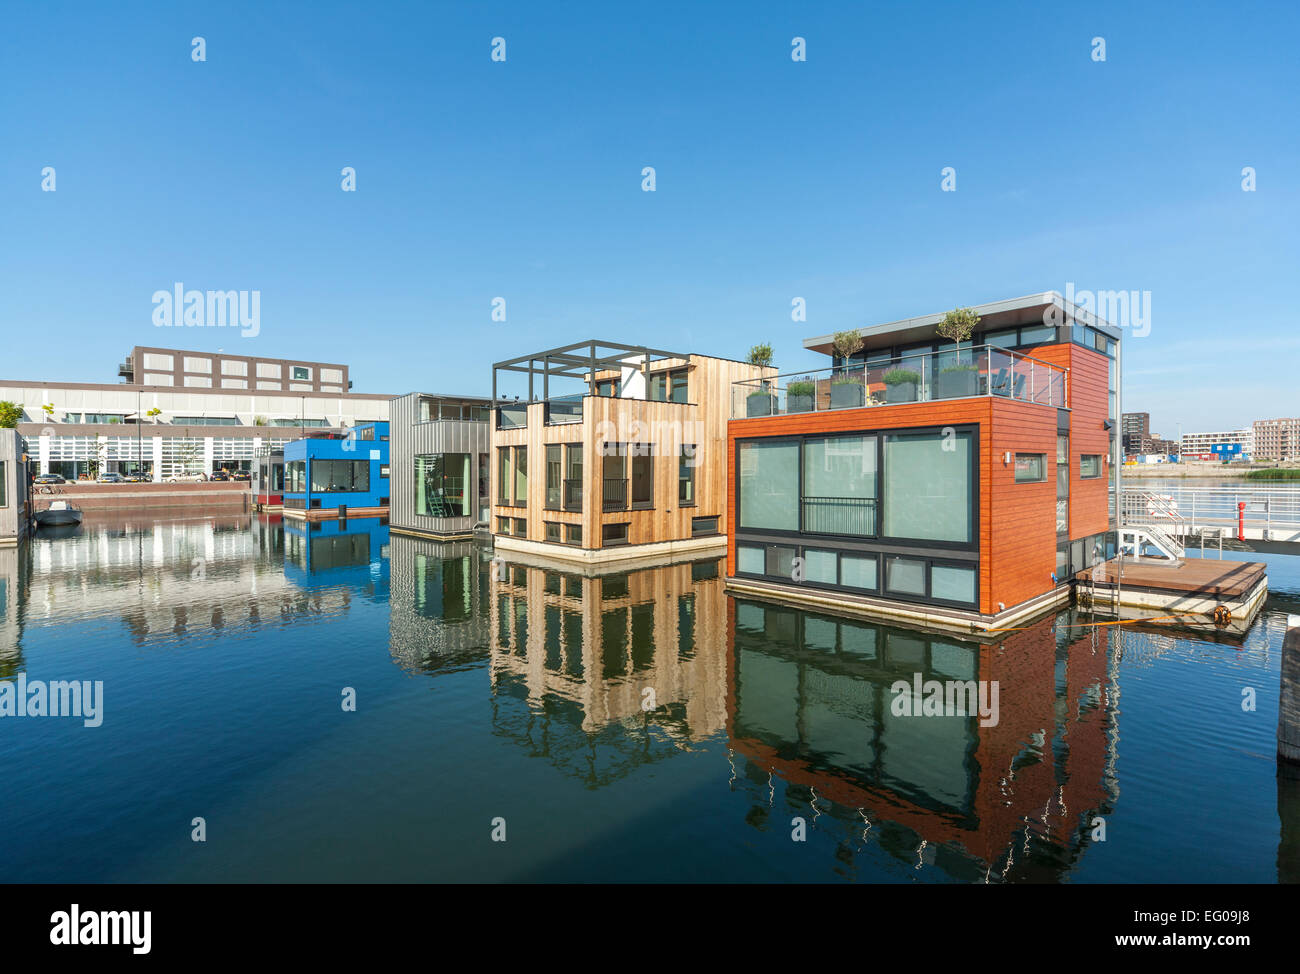 Floating houses homes modern houseboats house boats water villas in Amsterdam IJburg Yburg district. Rising sea - Stock Image